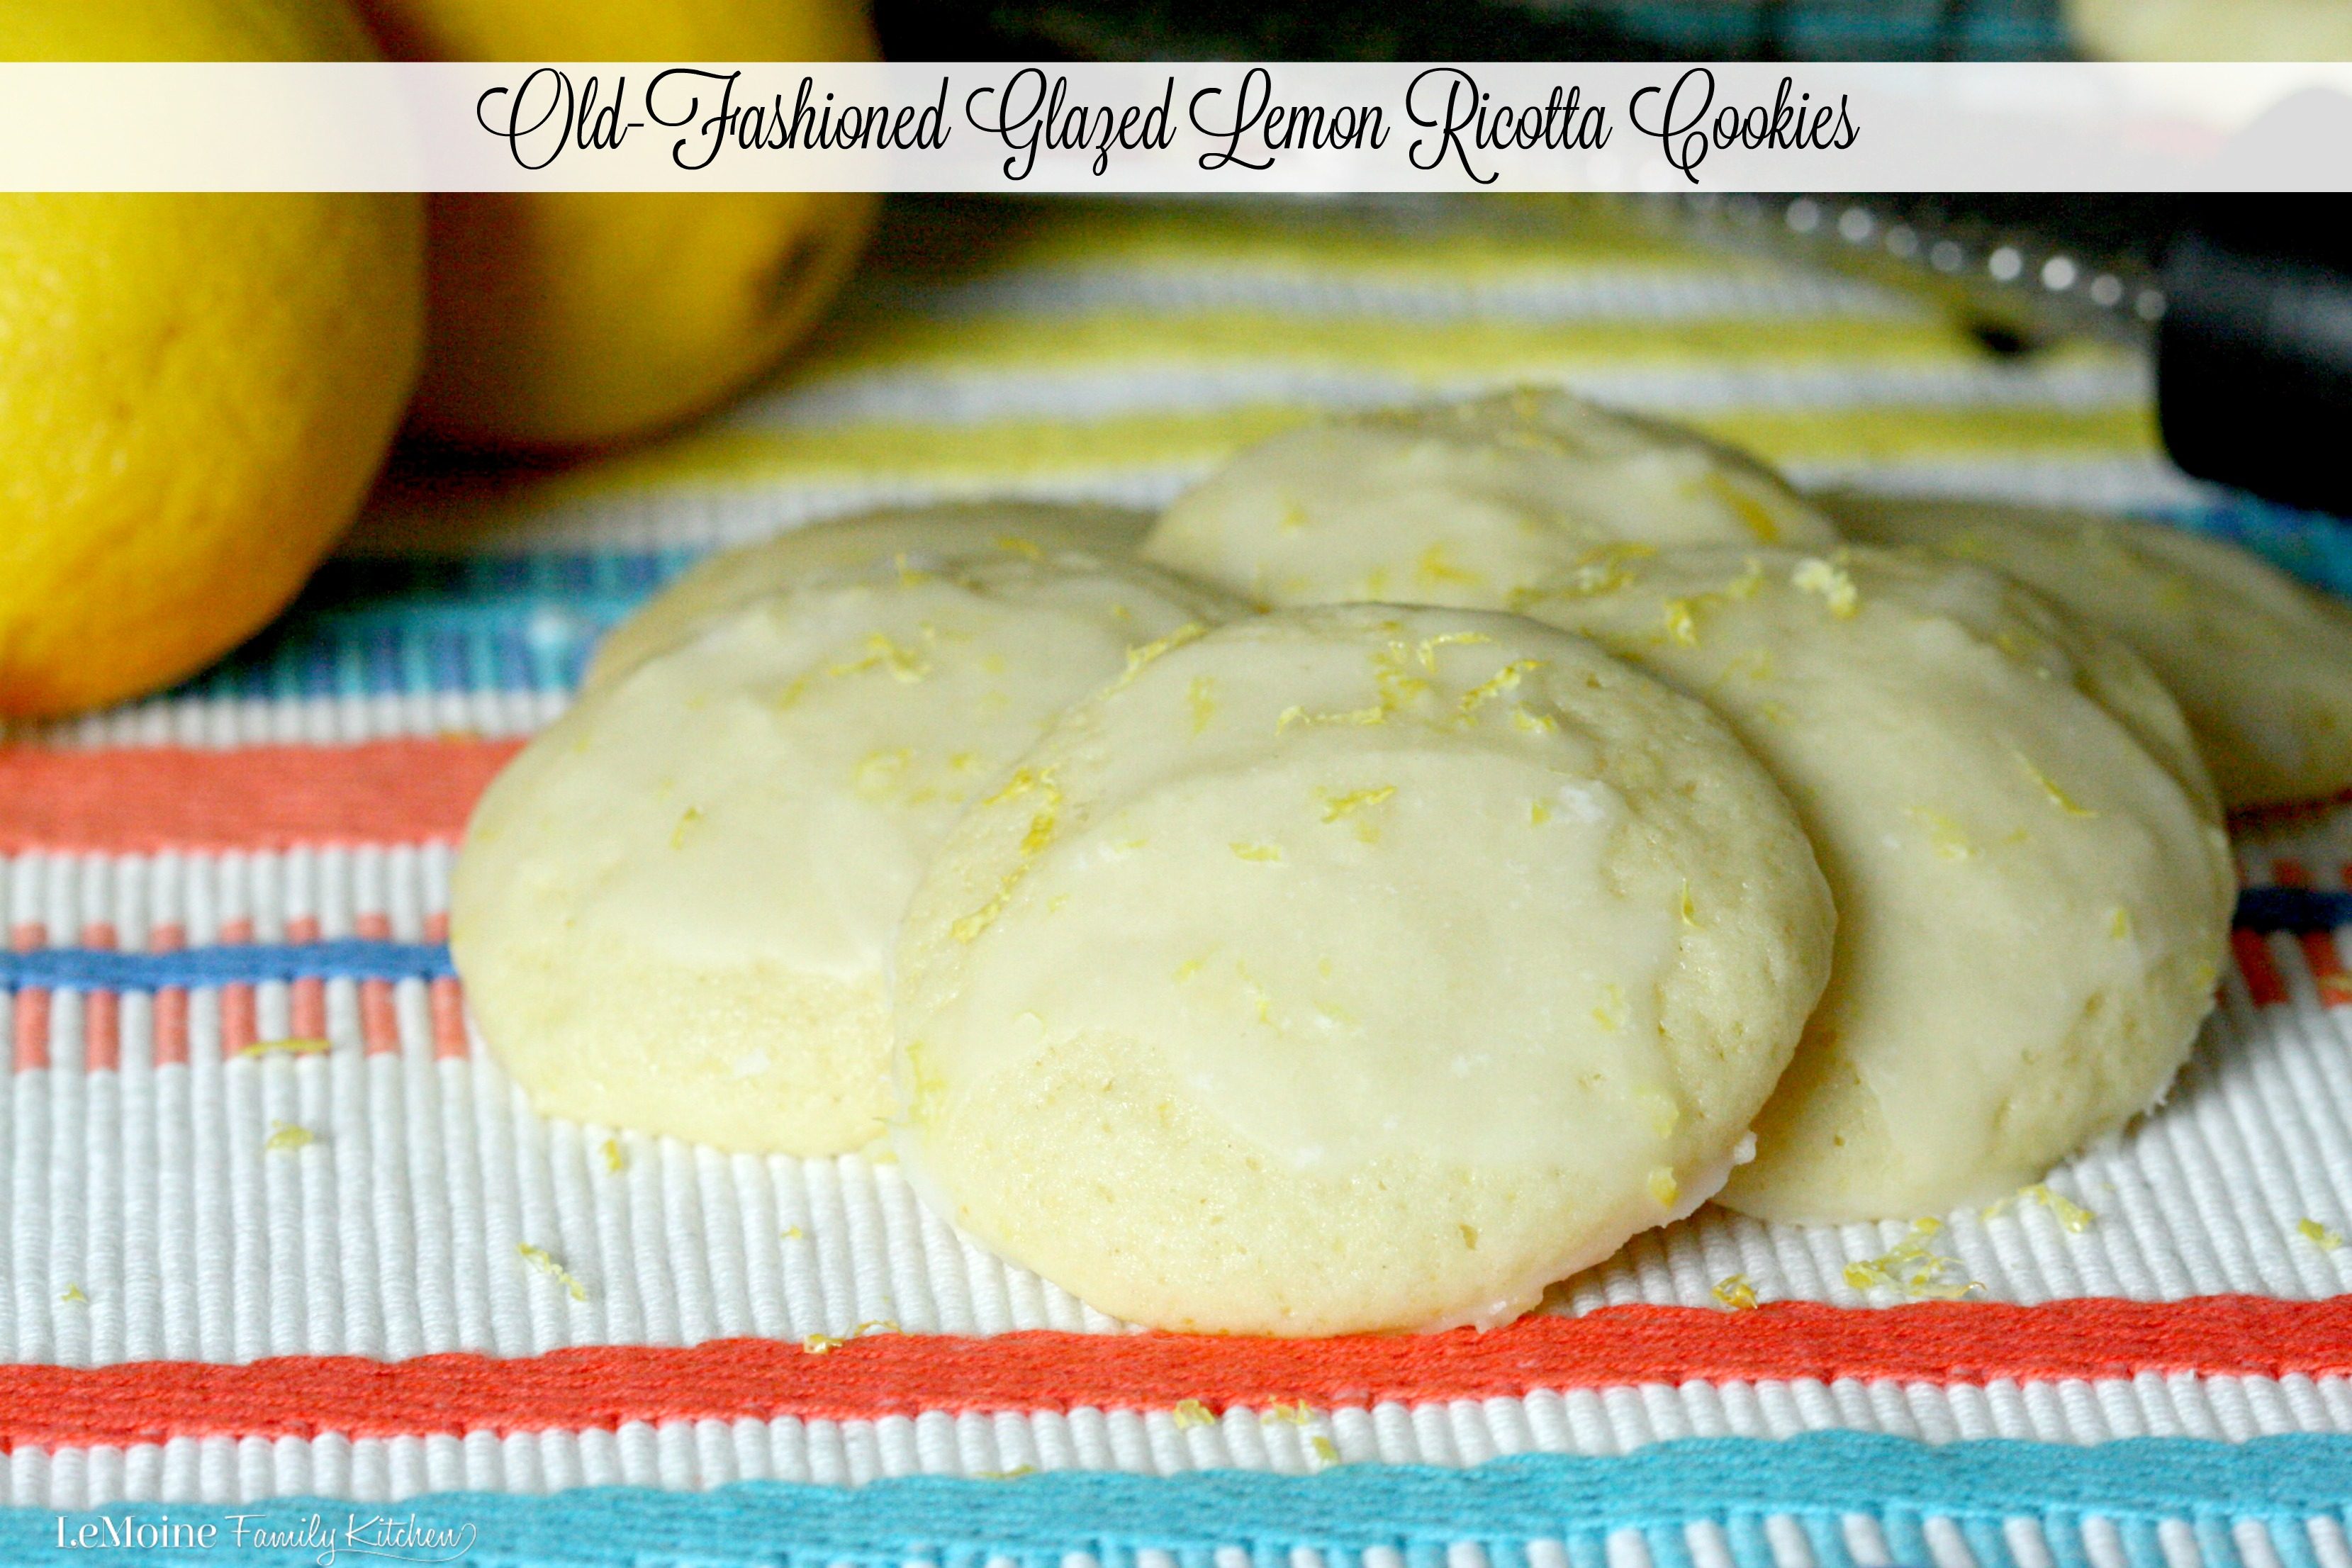 Old-Fashioned Glazed Lemon Ricotta Cookies | LeMoine Family Kitchen . A light, soft, pillowy cookie with a refreshing lemon glaze. These cookies are just heavenly.